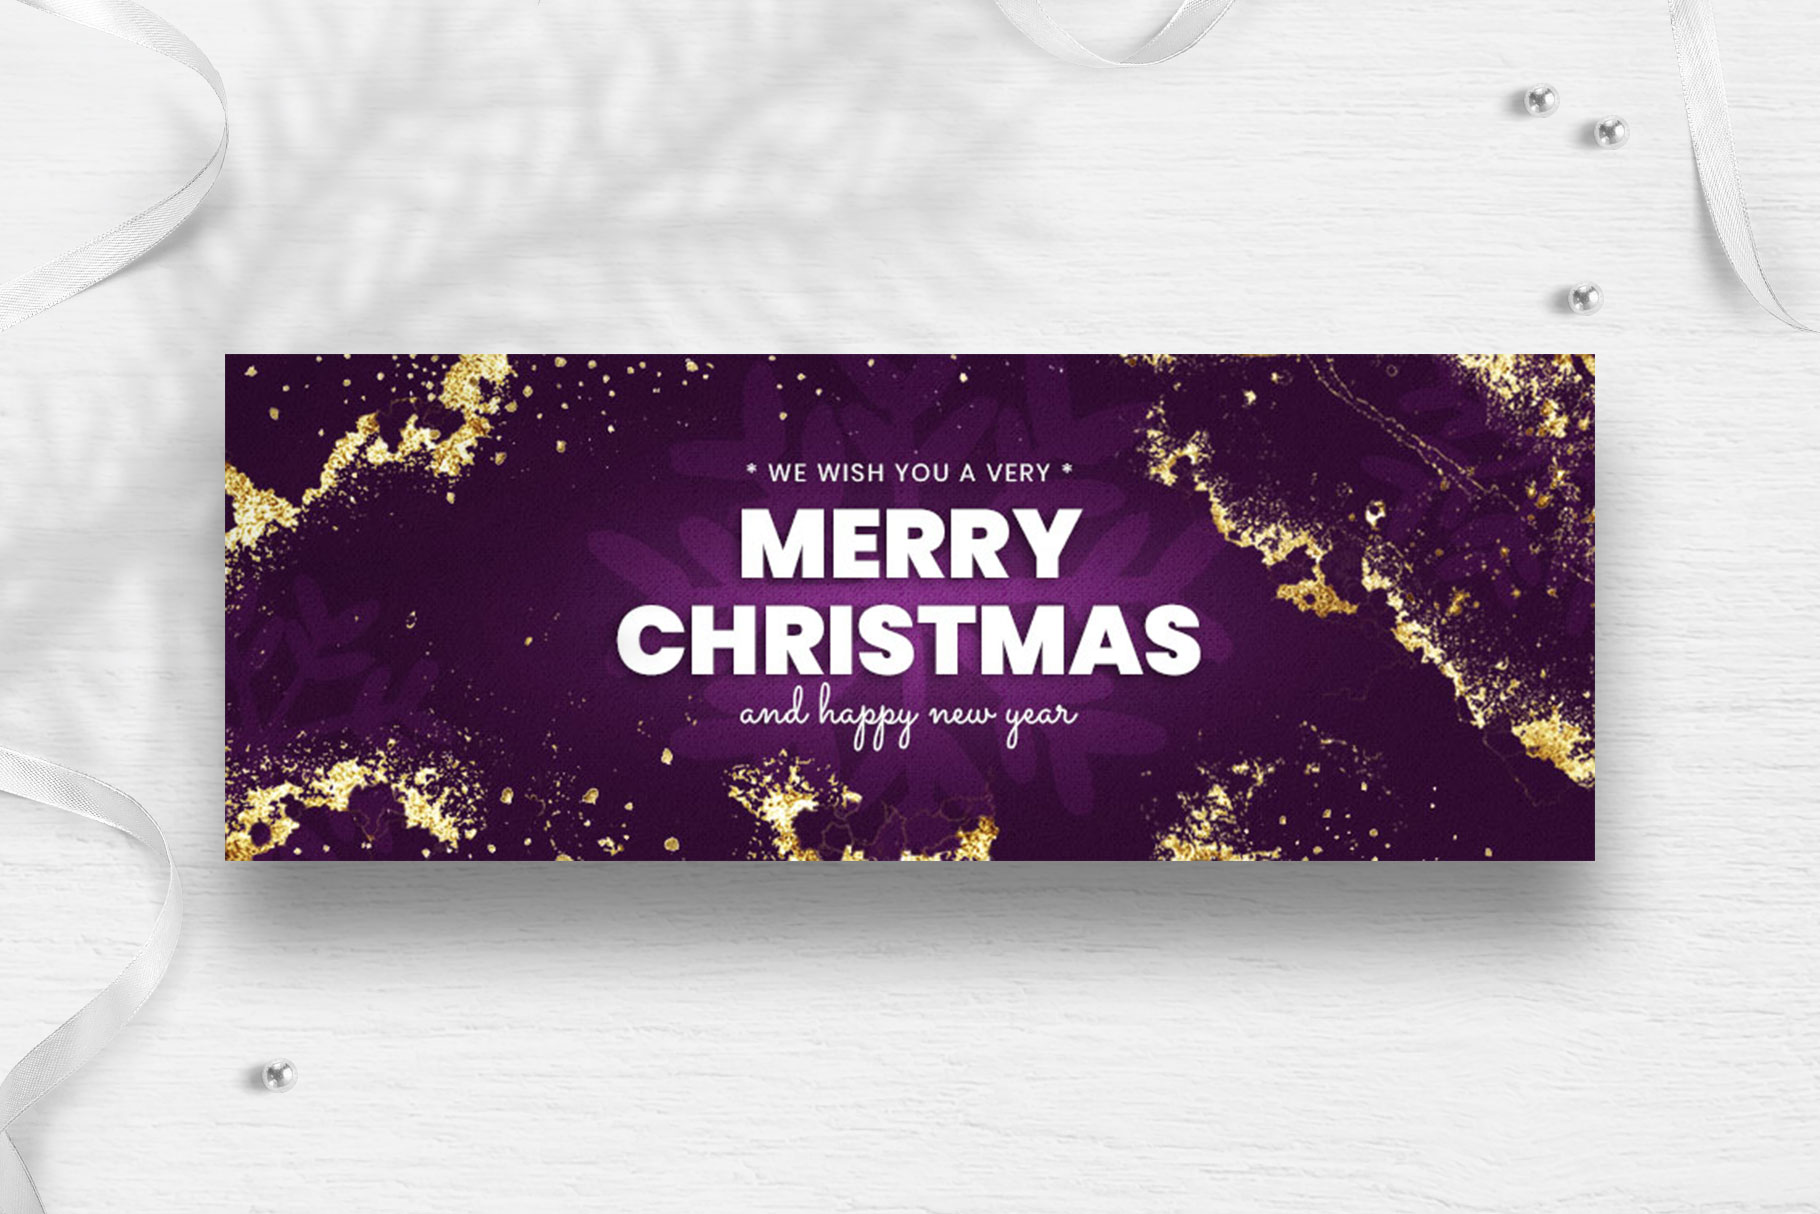 Merry Christmas Facebook Cover Template example image 3